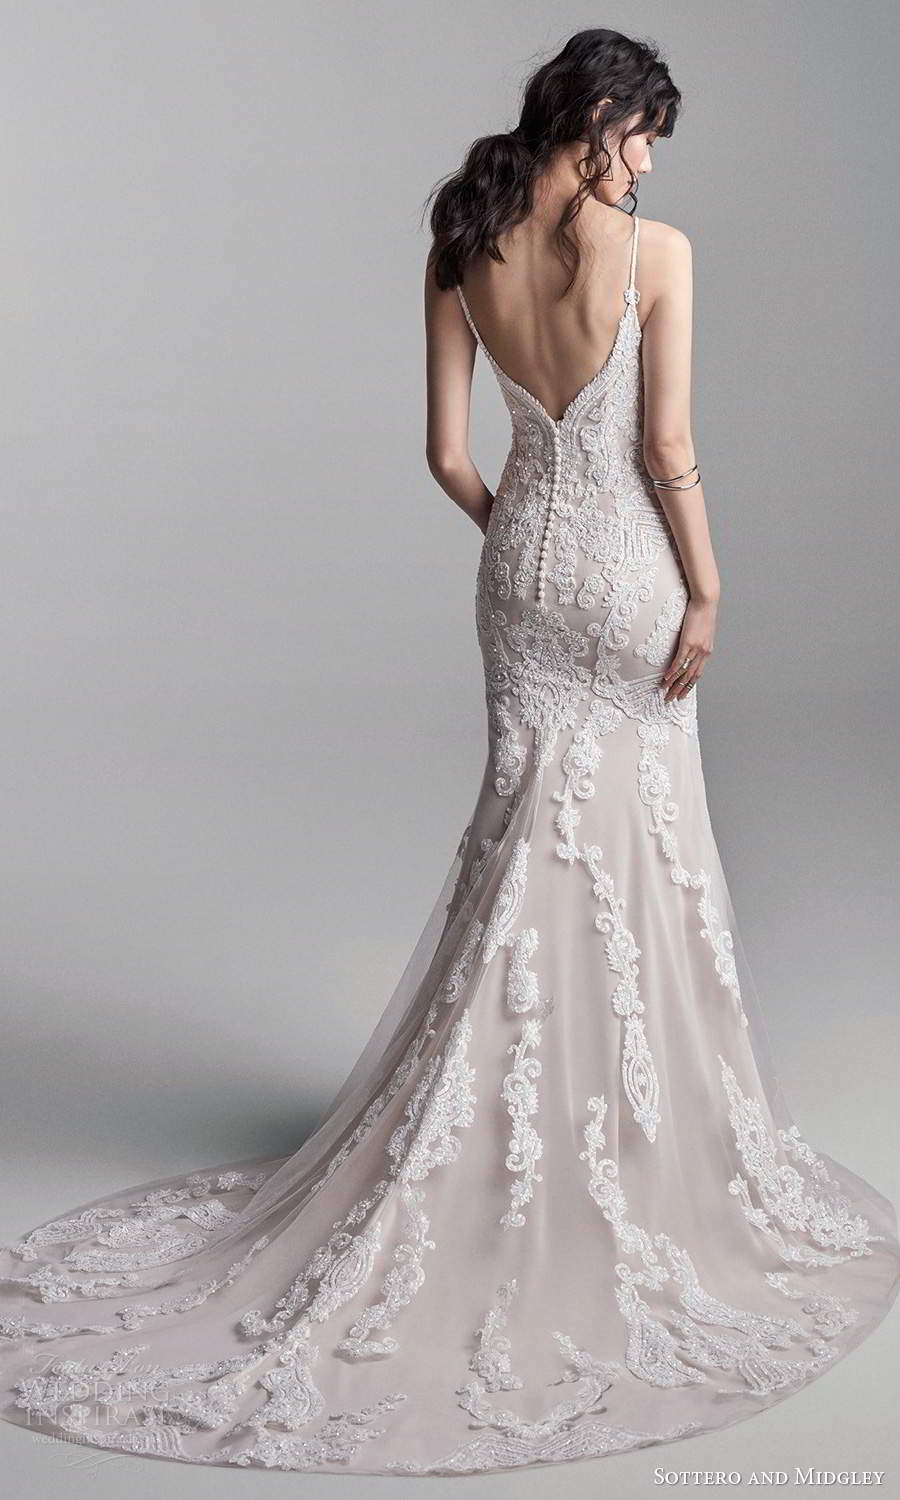 sottero midgley fall 2020 bridal sleeveless thin straps plunging sweetheart neckline fully embellished fit flare mermaid wedding dress chapel train (13) bv